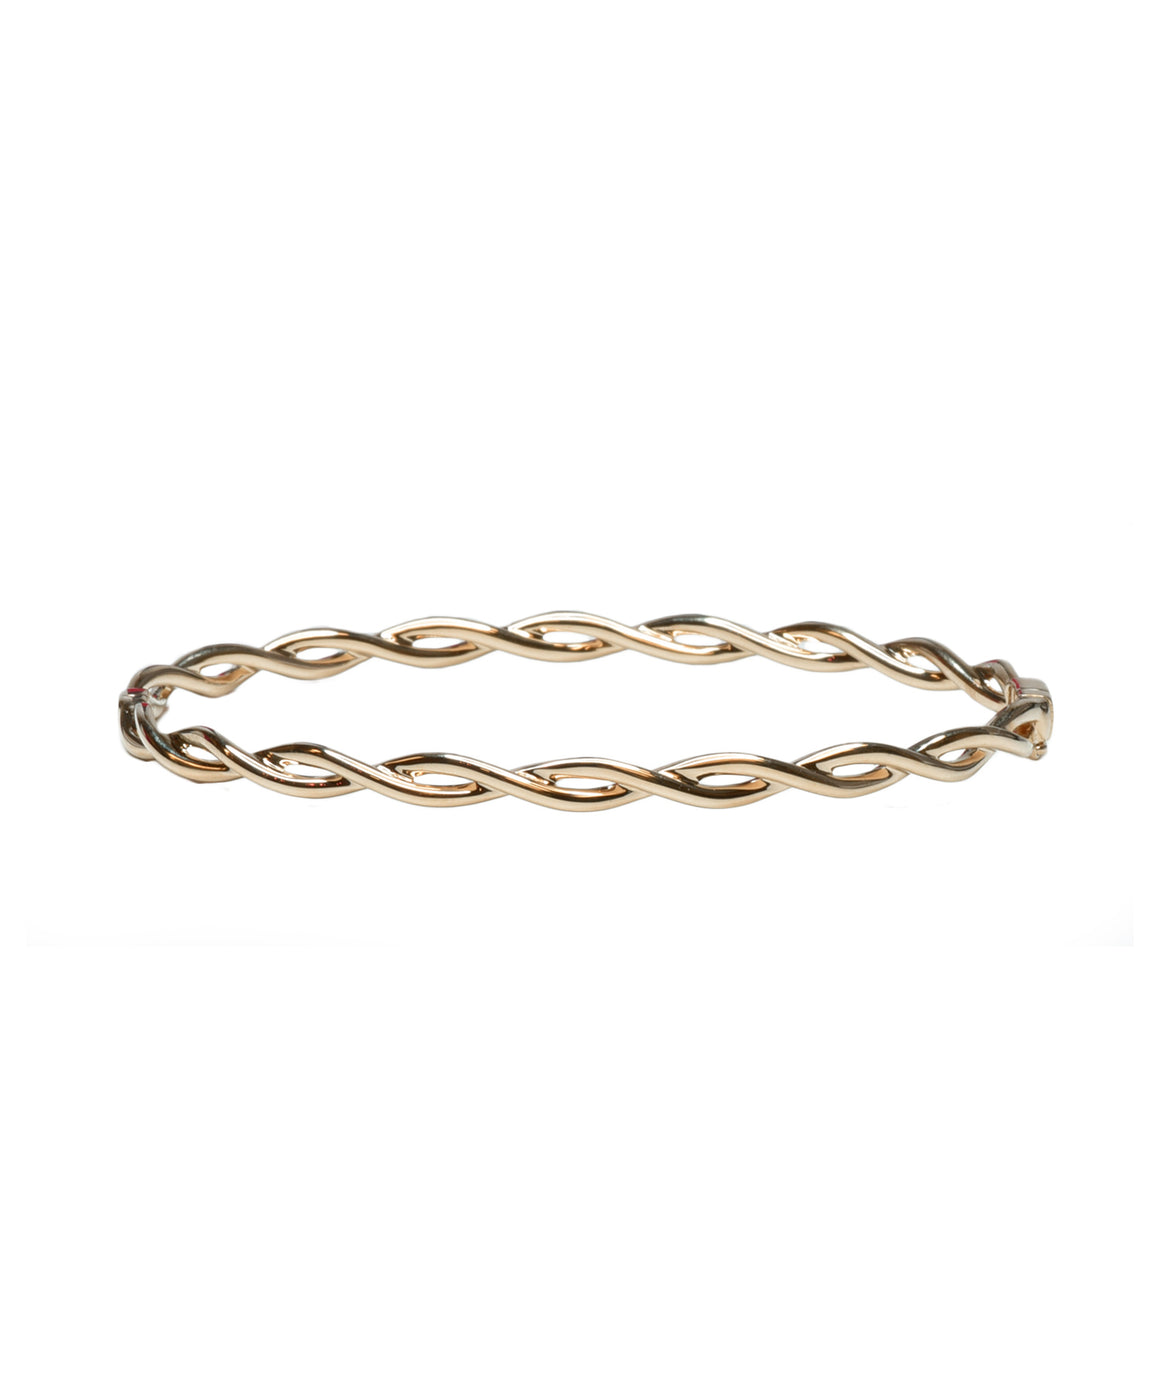 Just a ribbon of rose gold to add to your stack, this hinged oval bangle in 14k rose gold is 3.5 mm wide.